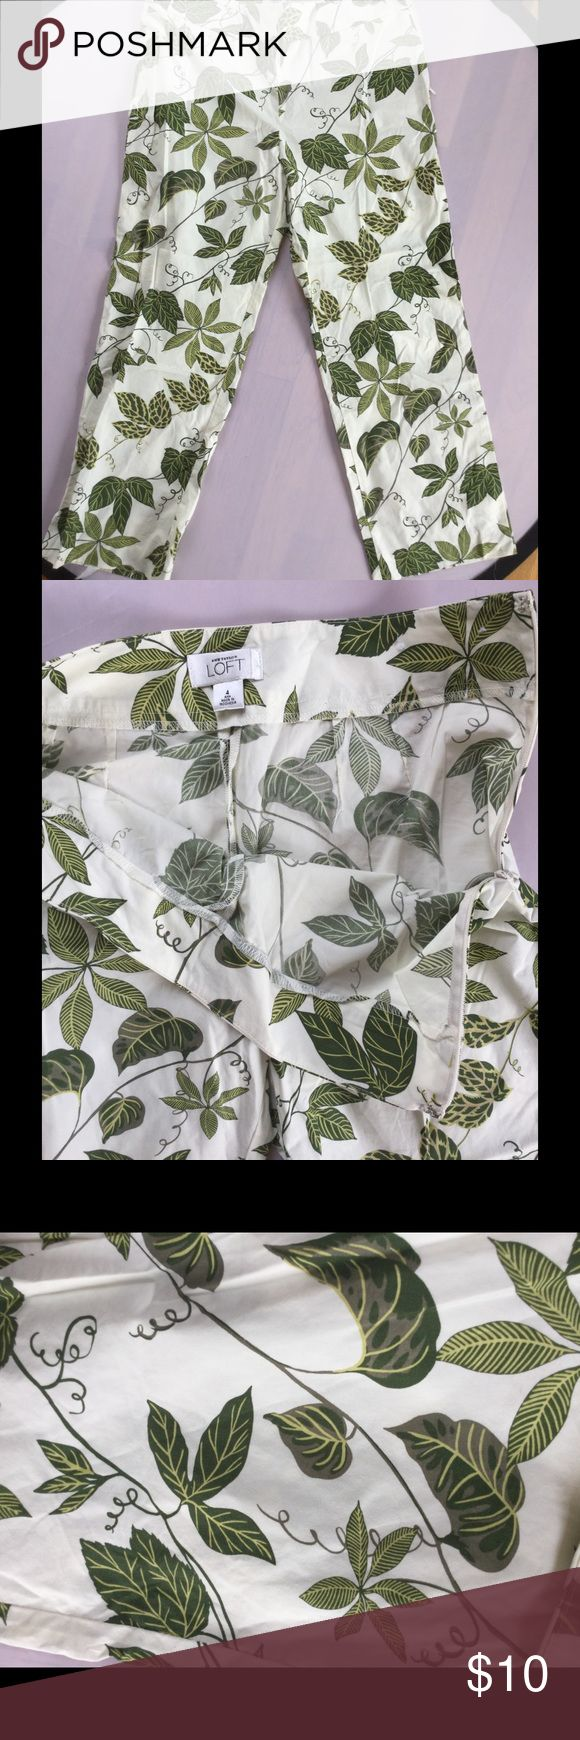 Loft Botanical Capris Great Loft capris. I adore these capris, but after having my third child, I've resigned myself to never fitting in them again. They are in great condition. Side zip. Non-smoking home. No trades, please. LOFT Pants Capris